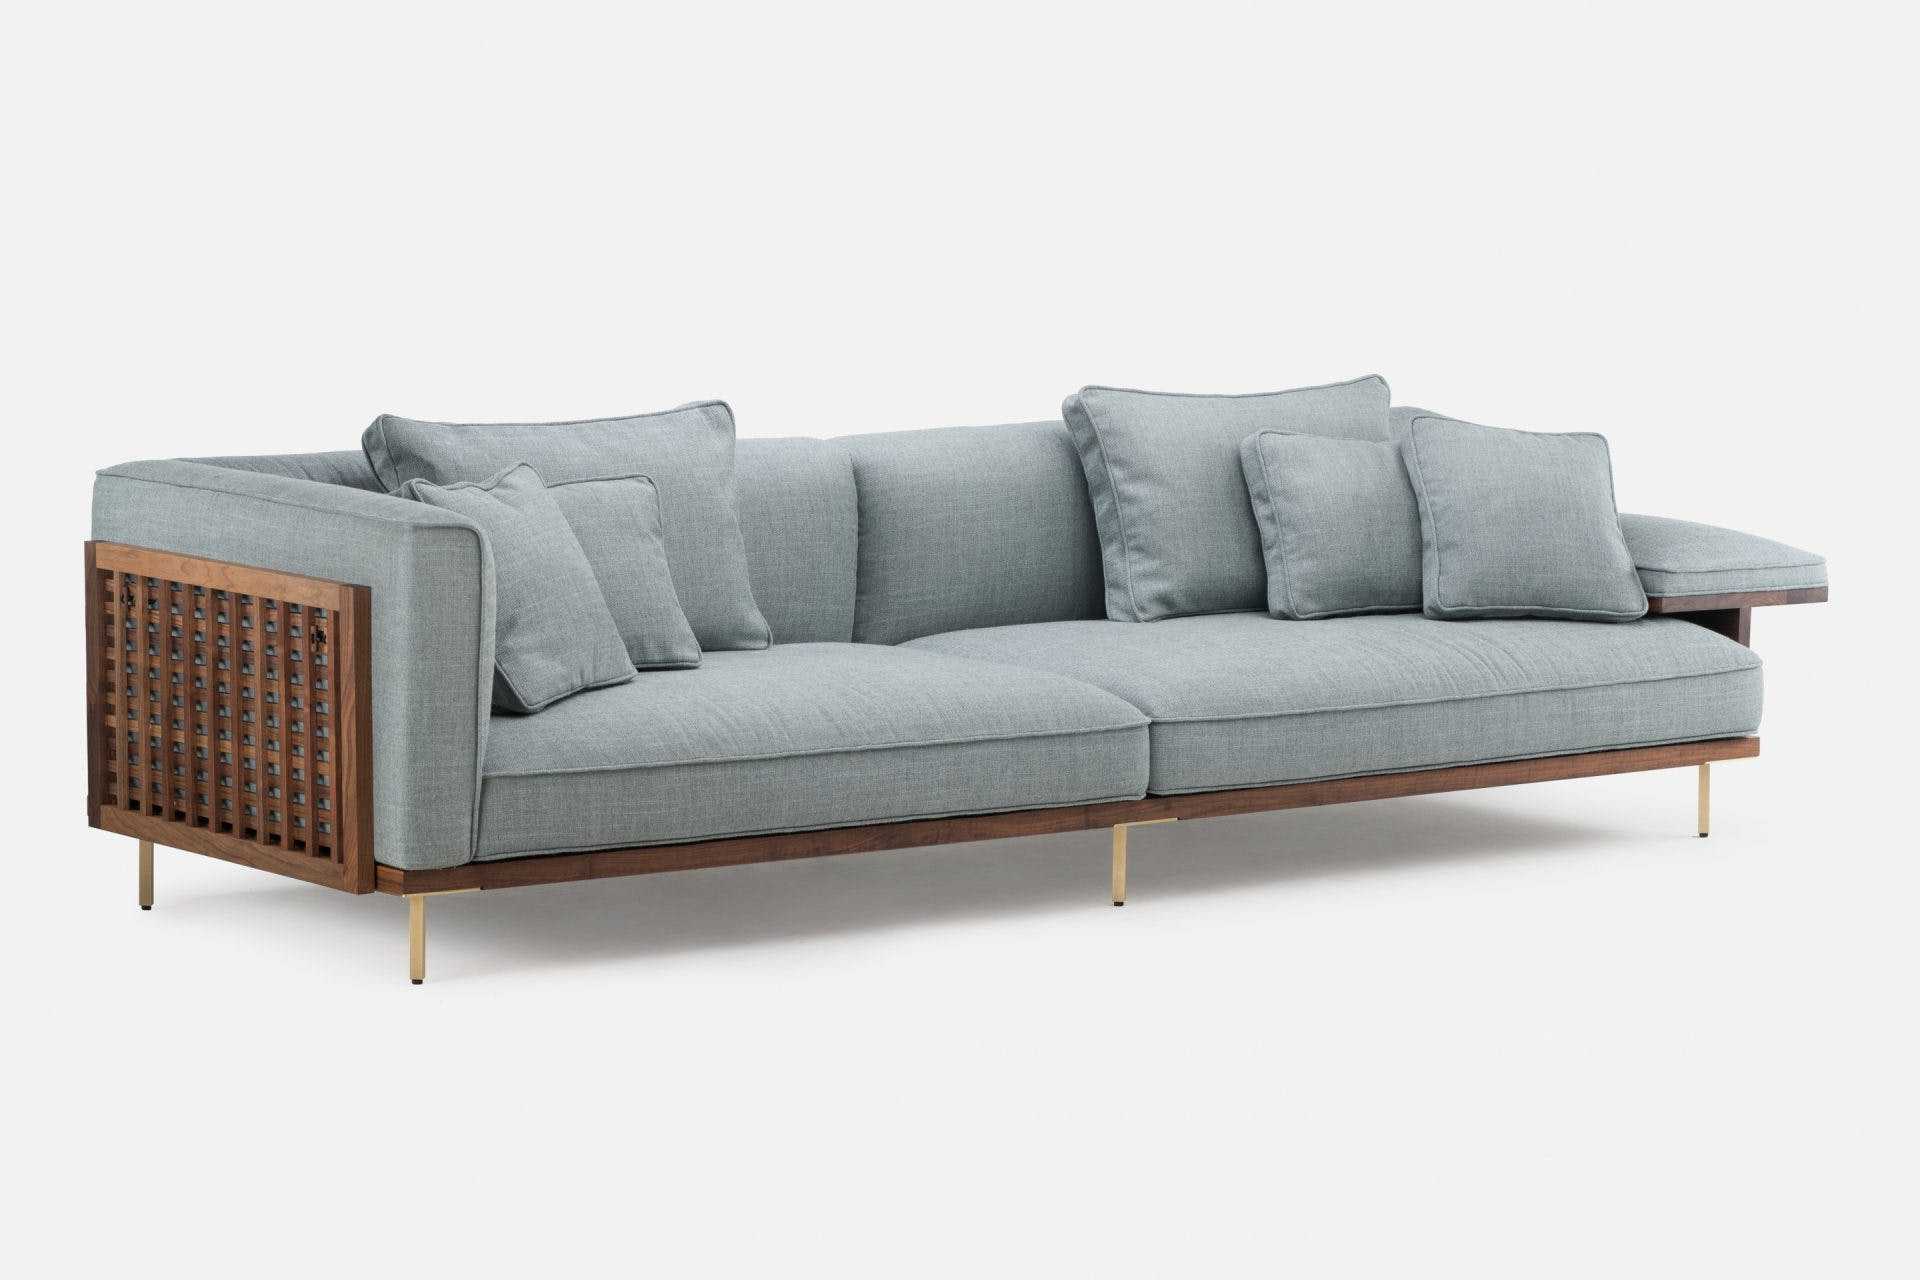 Belle Reeve Sofa By Luca Nichetto 2 2880X1920 Acf Cropped 1920X1280